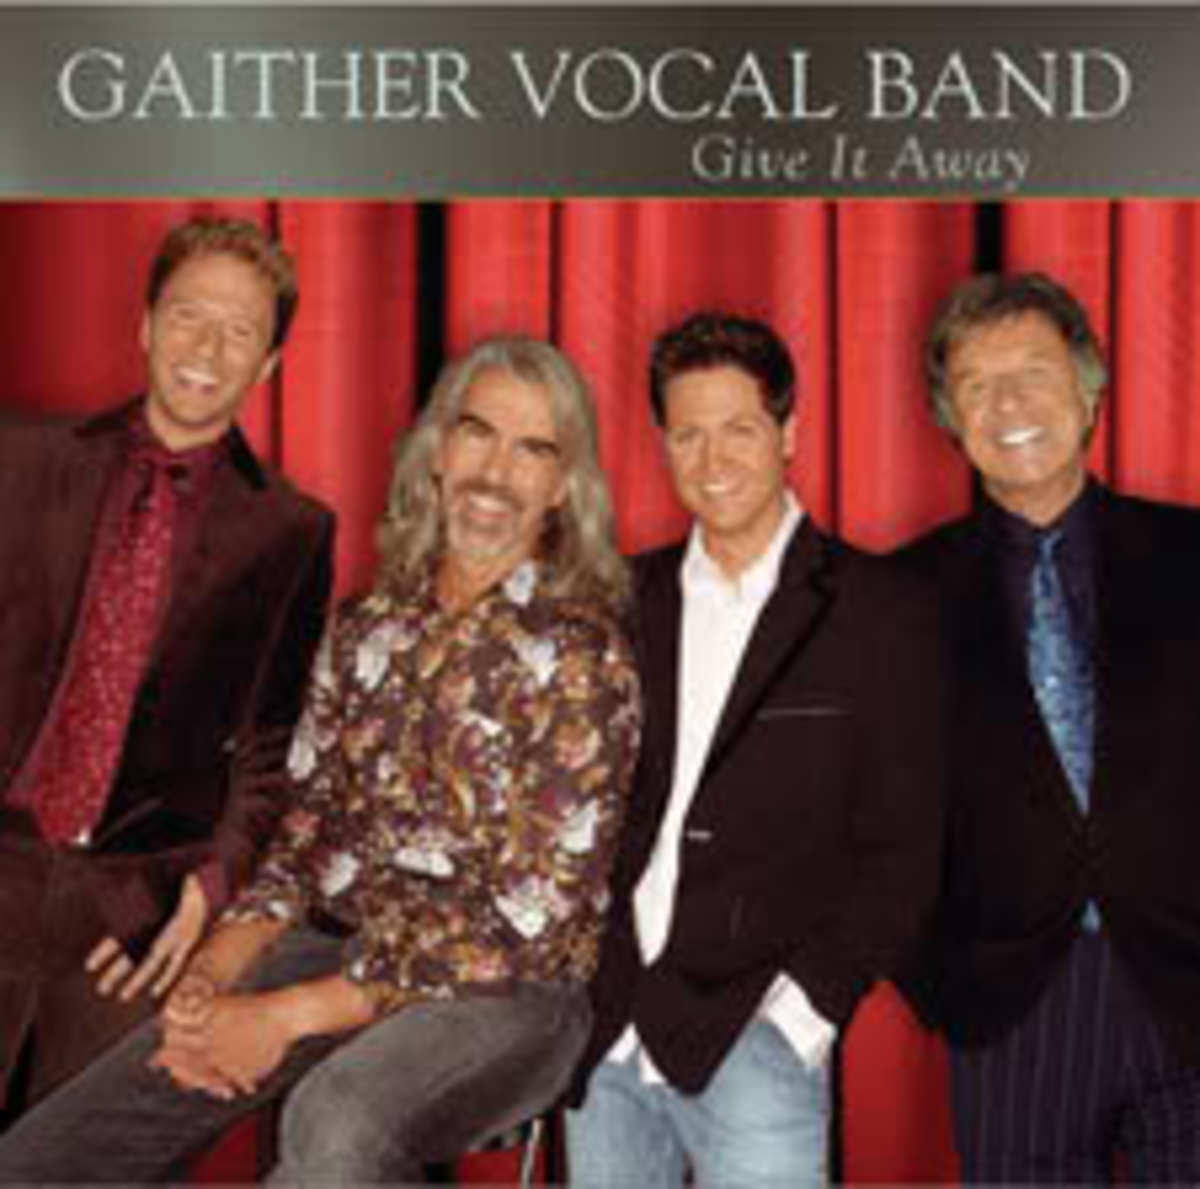 Gaither Vocal Band (GVB) knows God's name